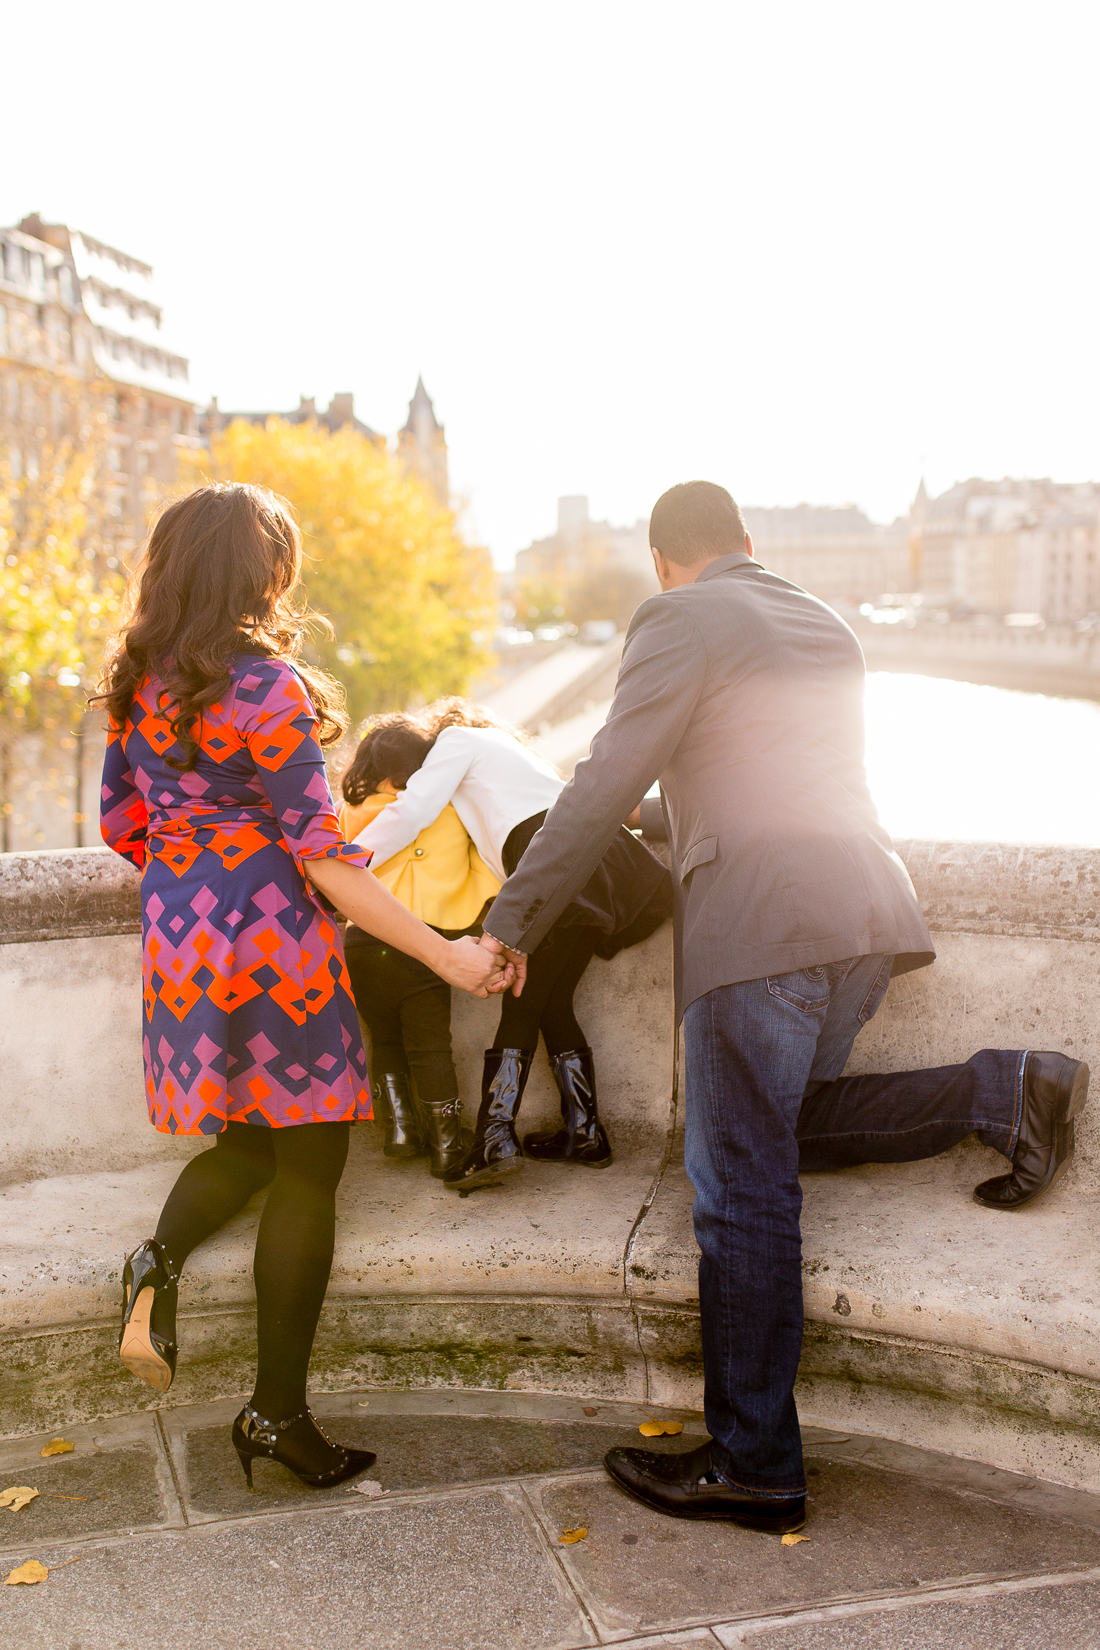 spring-fall-family-paris-eiffel-tower-photo-session-outfit-inspiratn-17